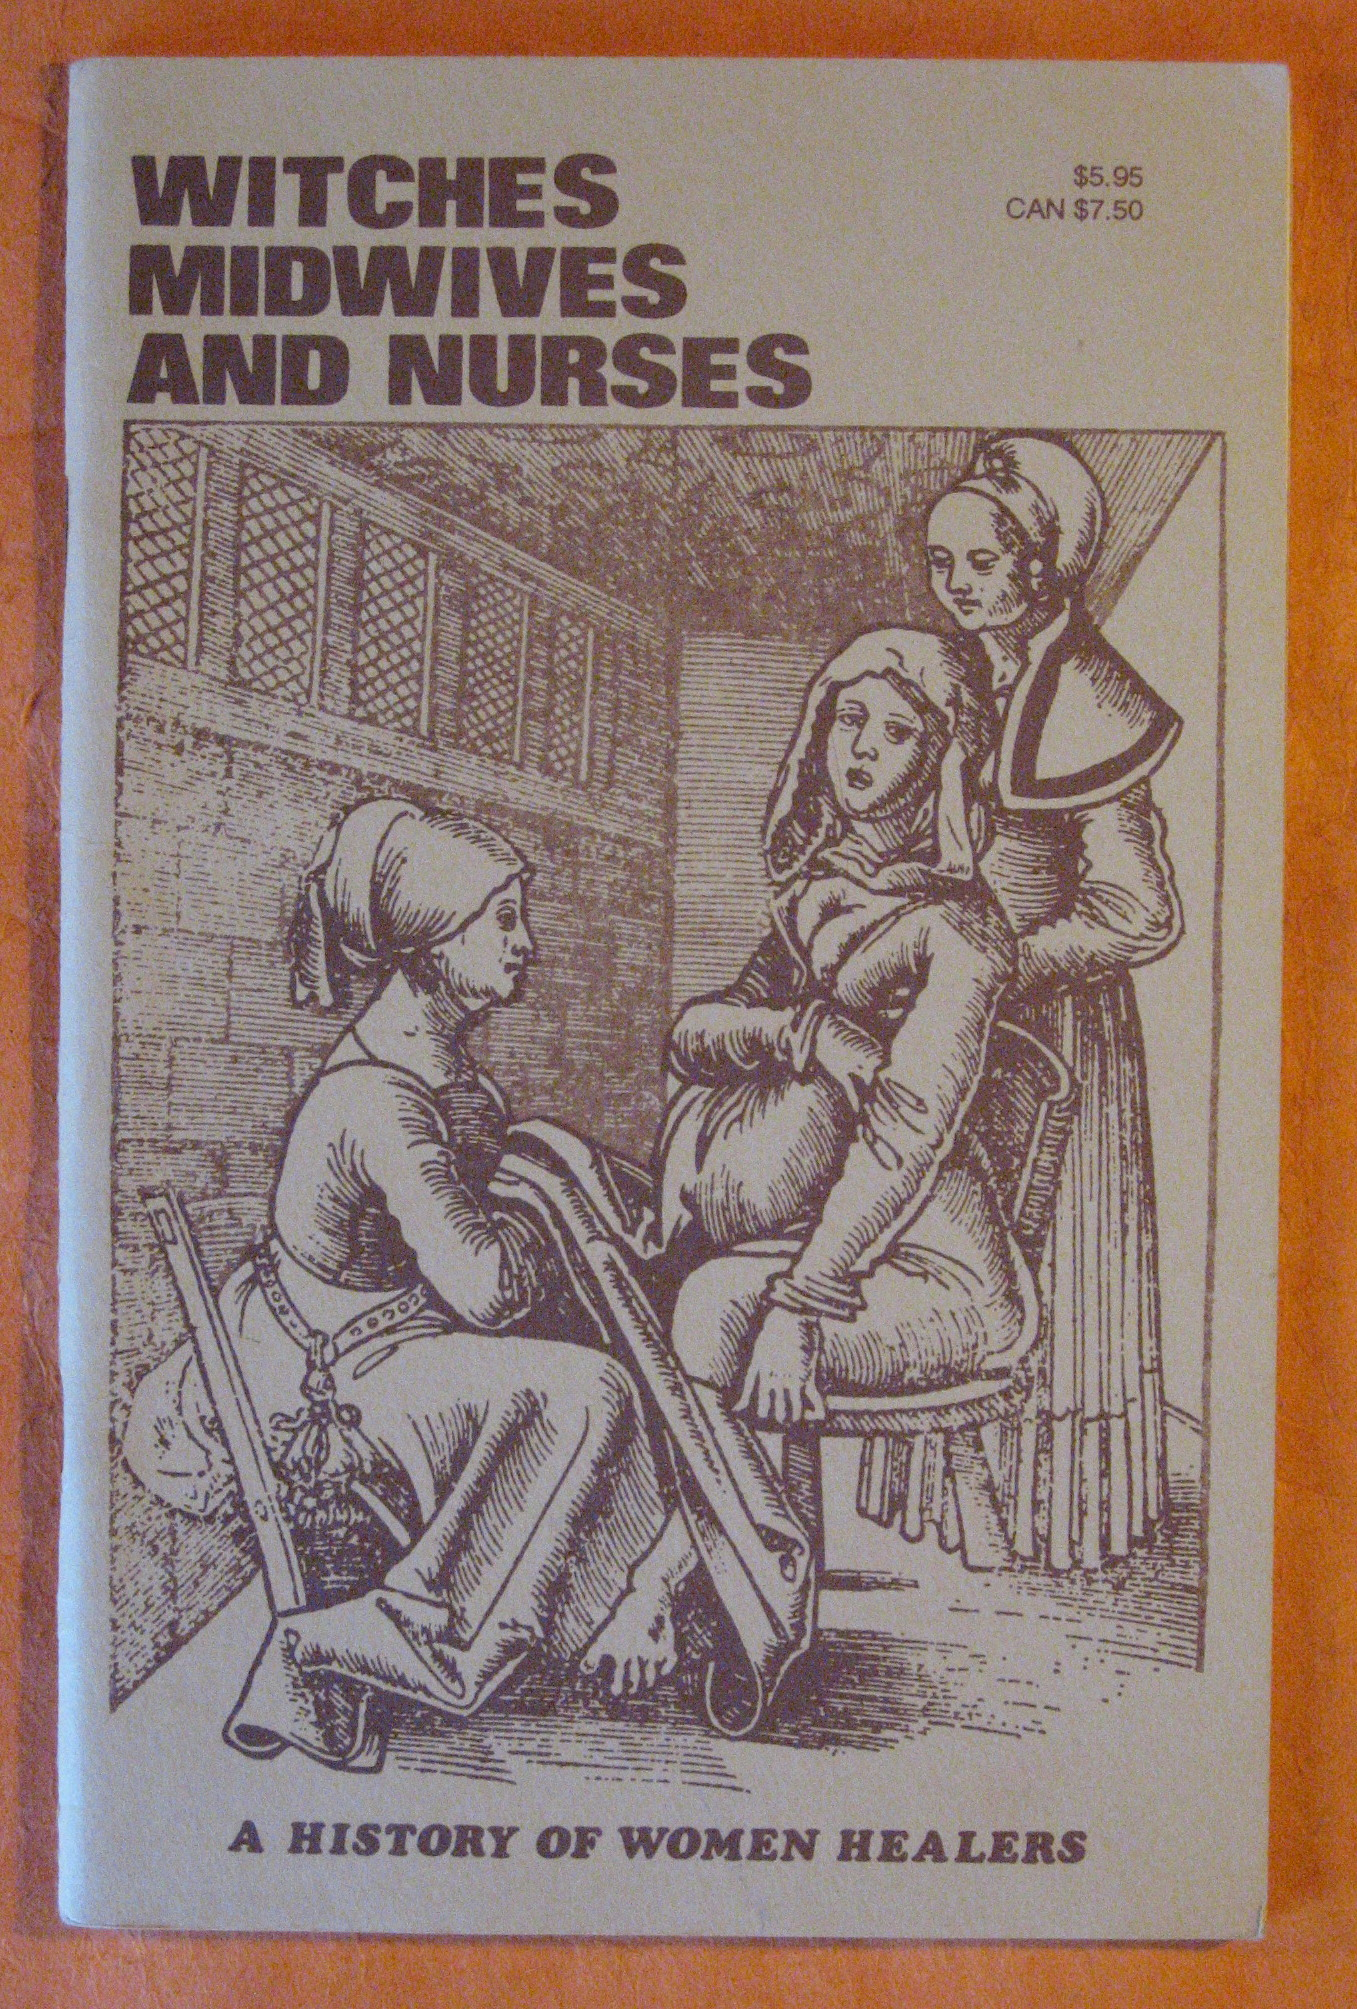 Witches, Midwives, and Nurses: a History of Women Healers, Ehrenreich, Bartbara & English, Deirdre